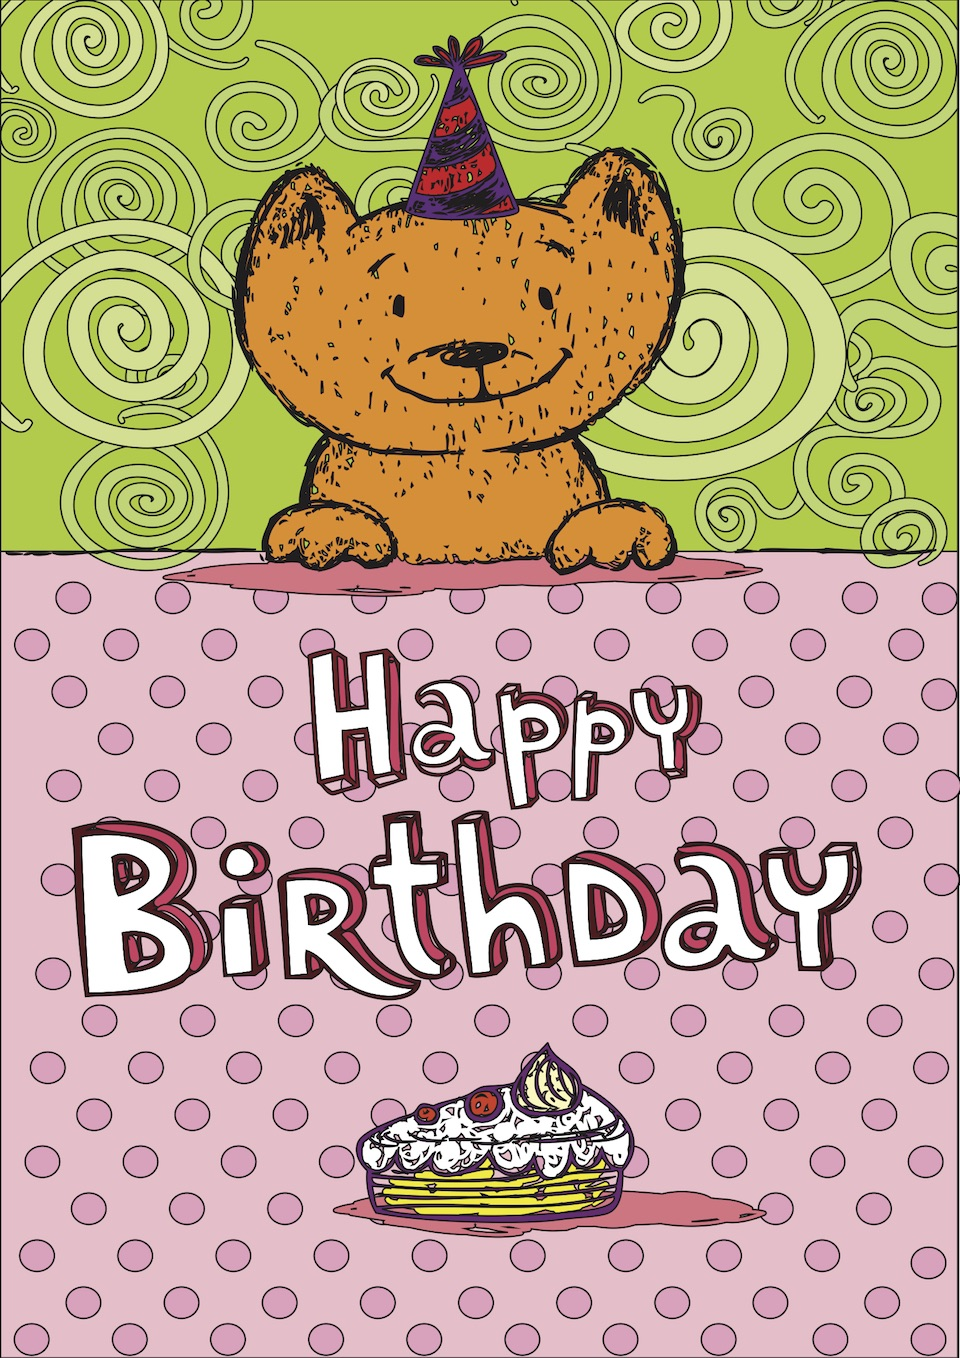 Kitten Happy Birthday Card Coloring Page - Cats Coloring Pages